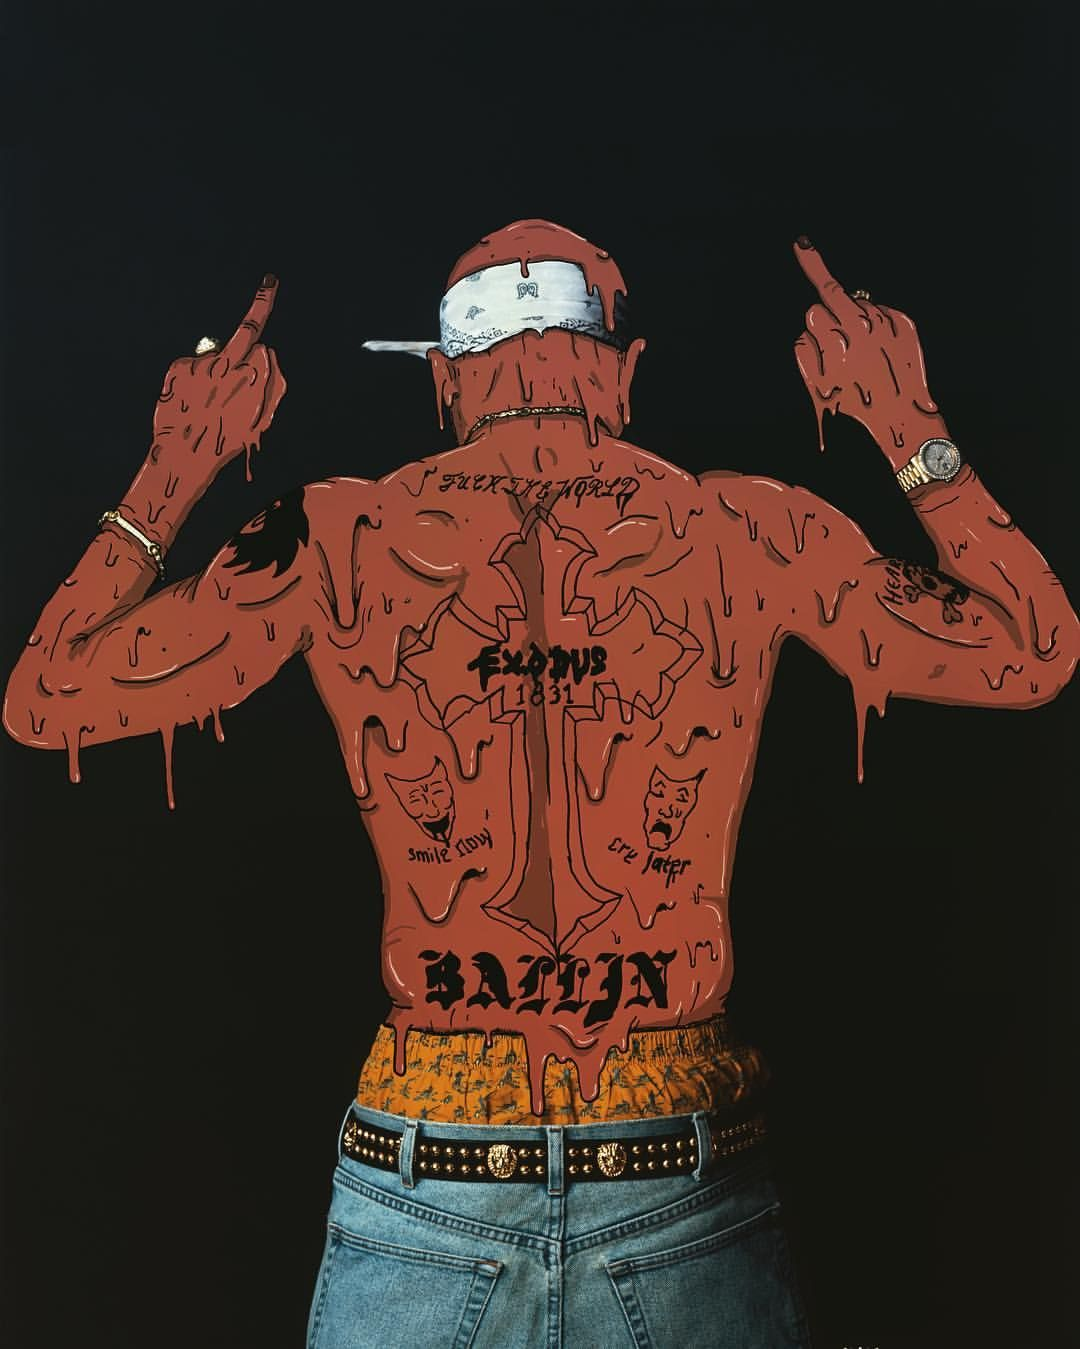 2pac Wallpapers For Iphone Posted By Christopher Peltier